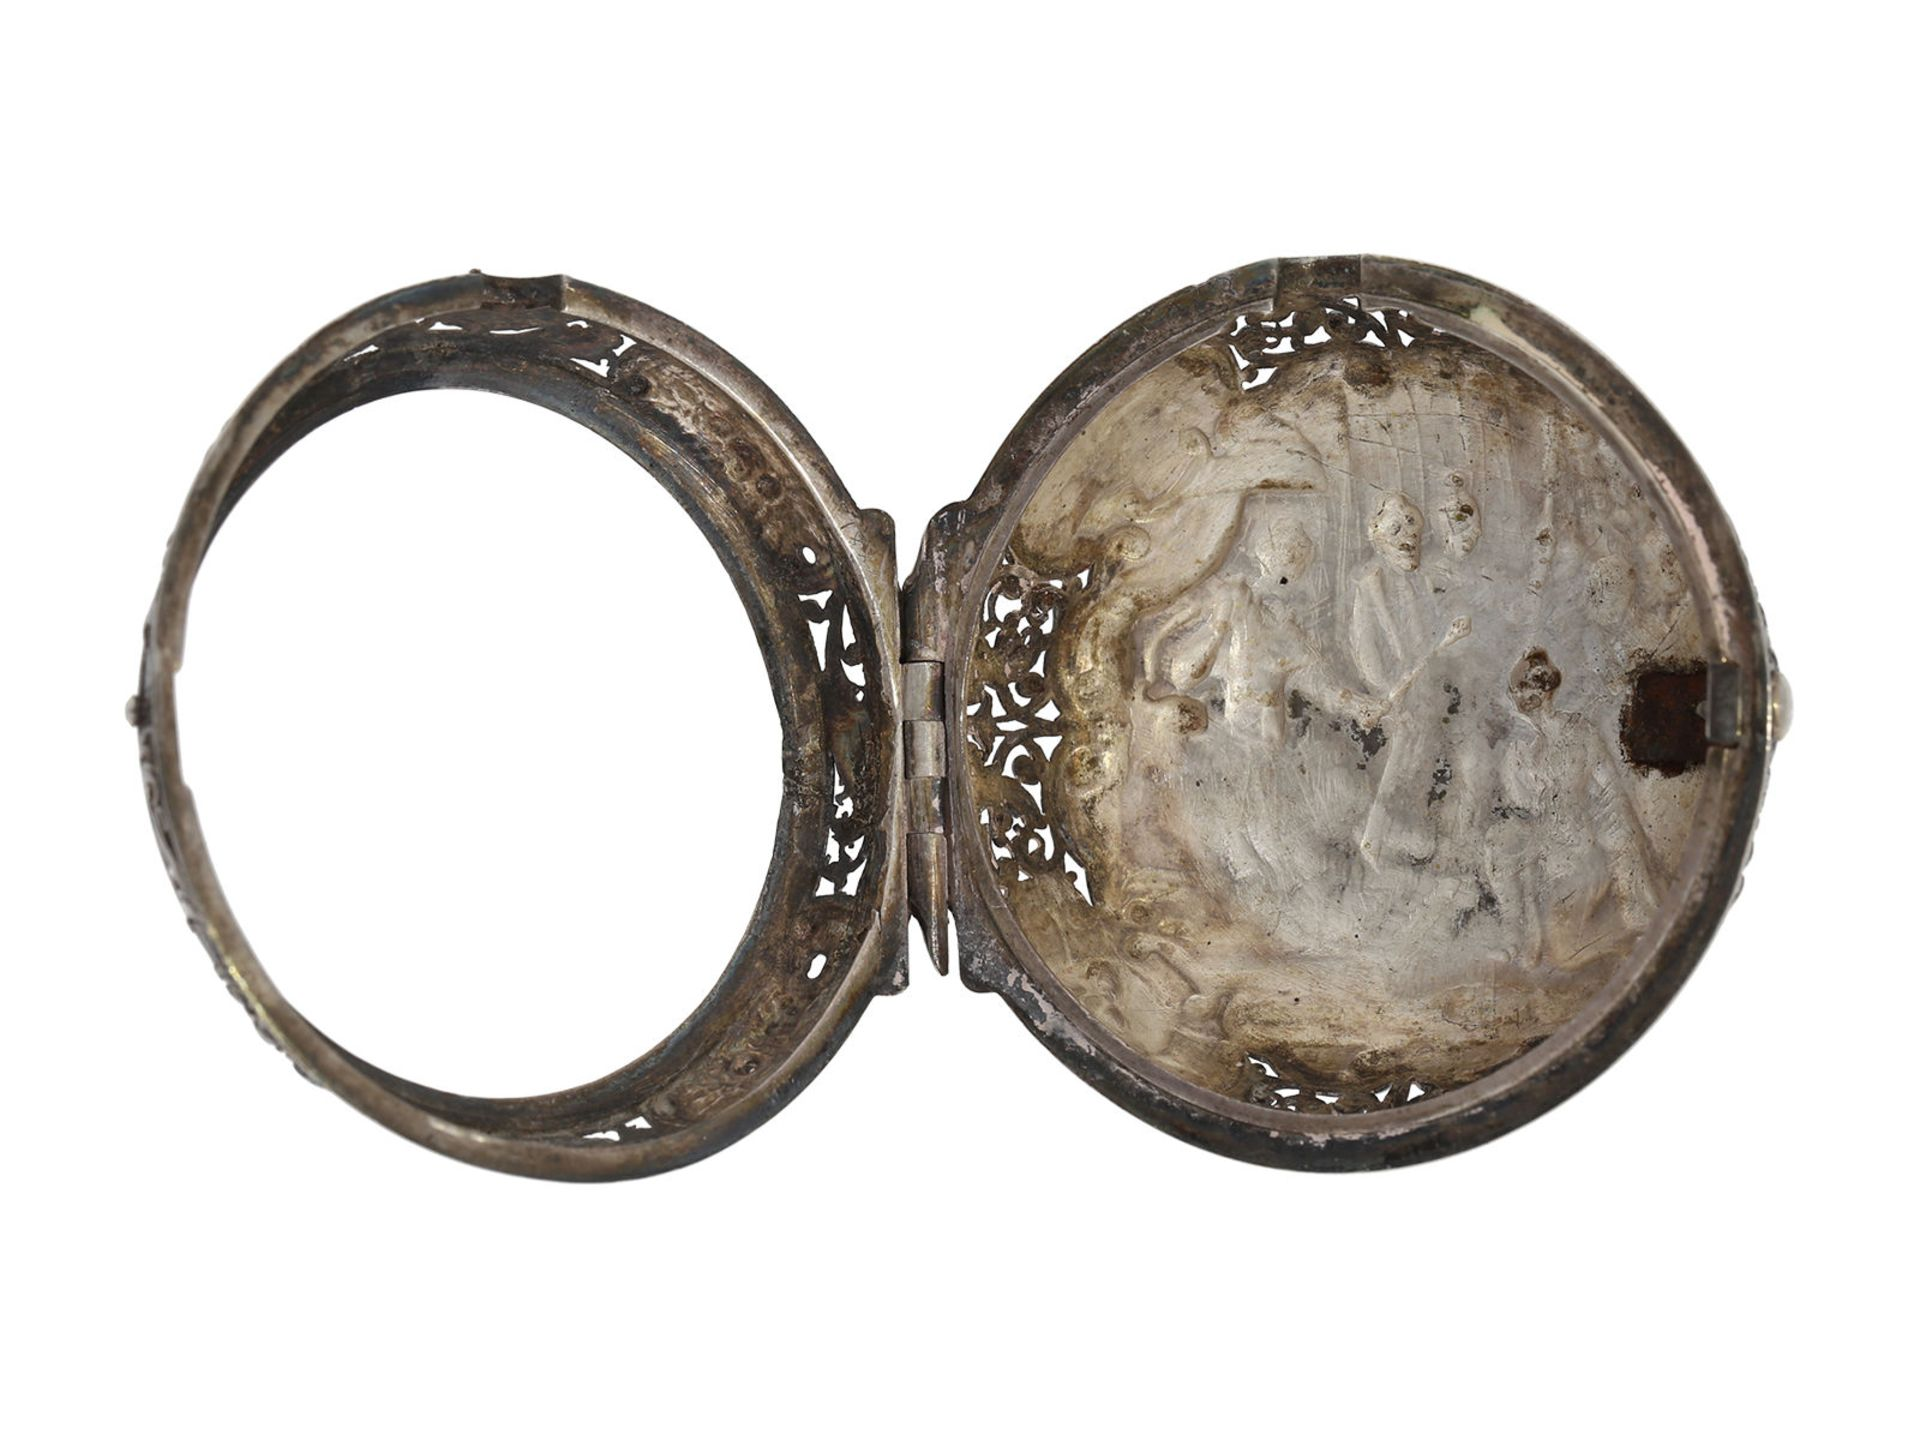 Pocket watch: Augsburg pair case repousse verge watch with relief case in exceptional quality and - Bild 13 aus 14